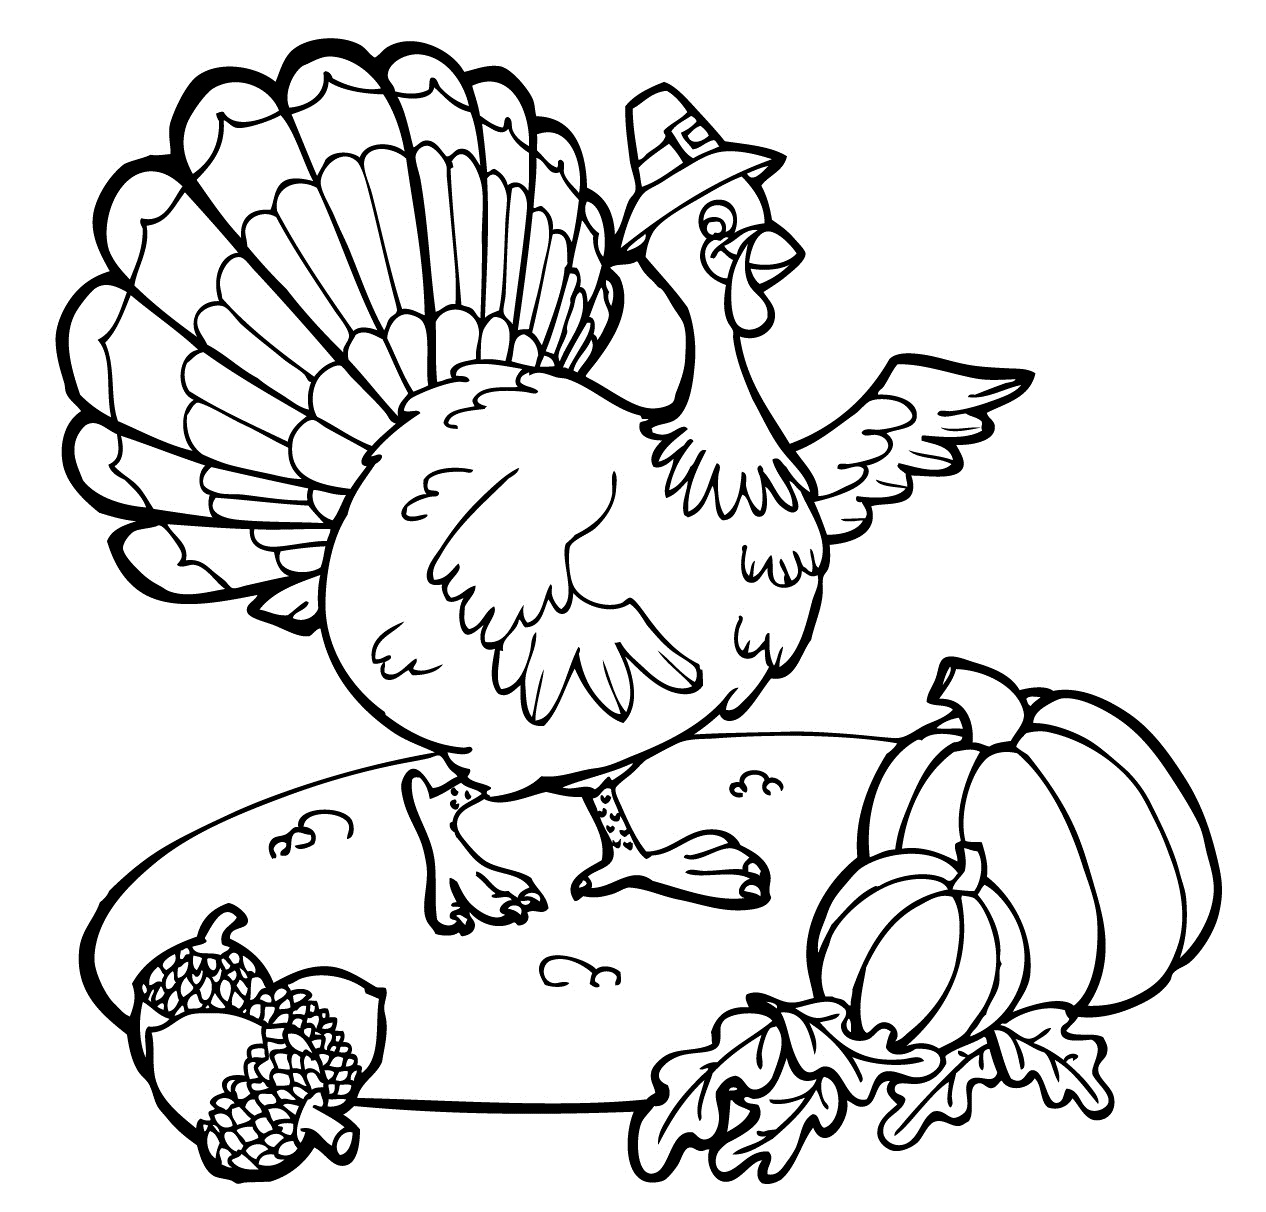 1266x1212 inspiring free color sheets best coloring page - Free Turkey Coloring Pages For Kids